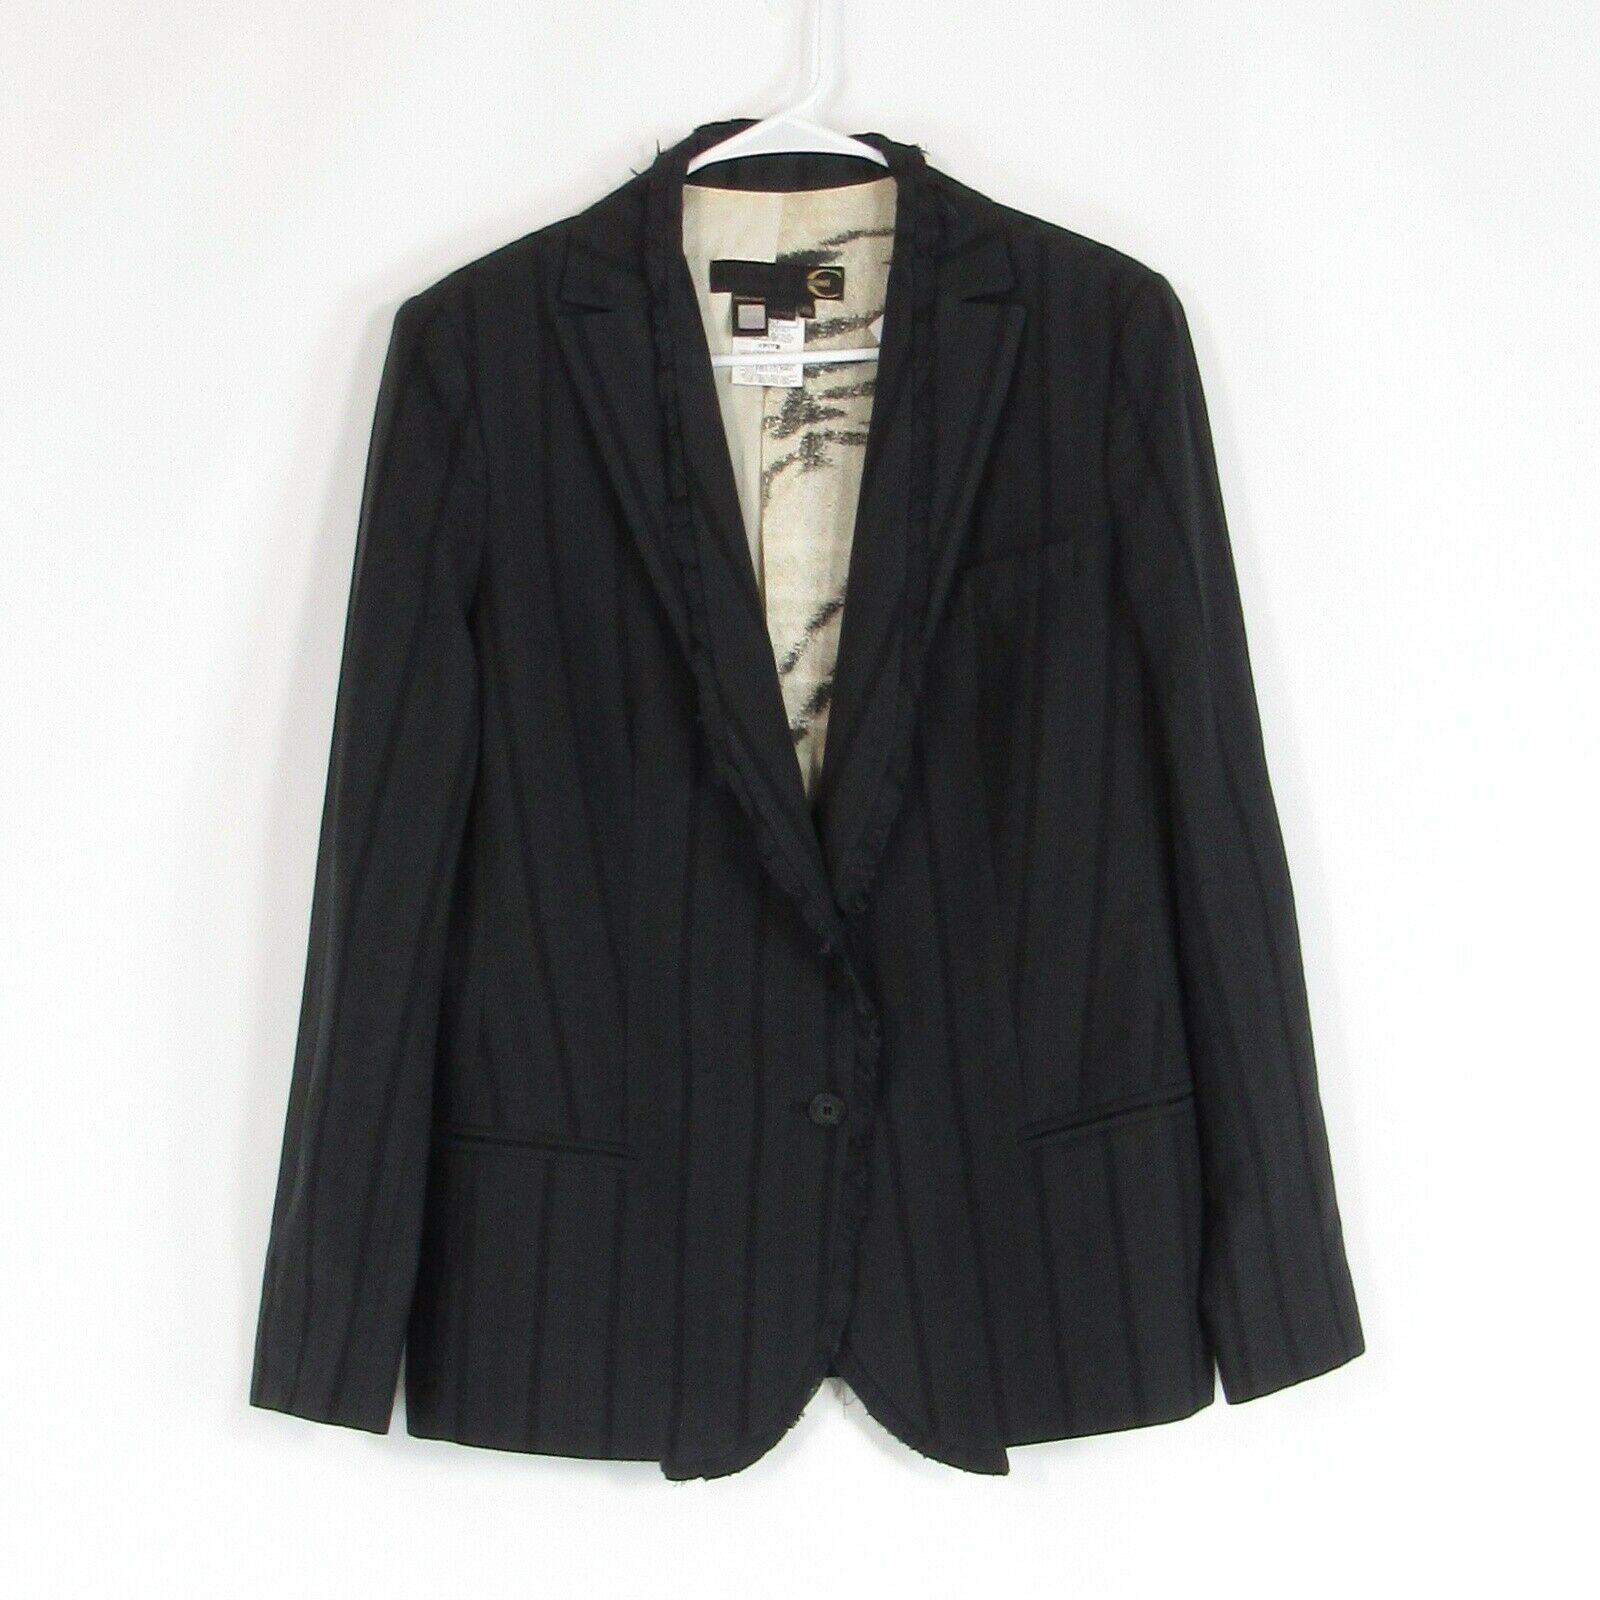 Primary image for Charcoal gray black striped cotton blend JUST CAVALLI blazer jacket IT48 14